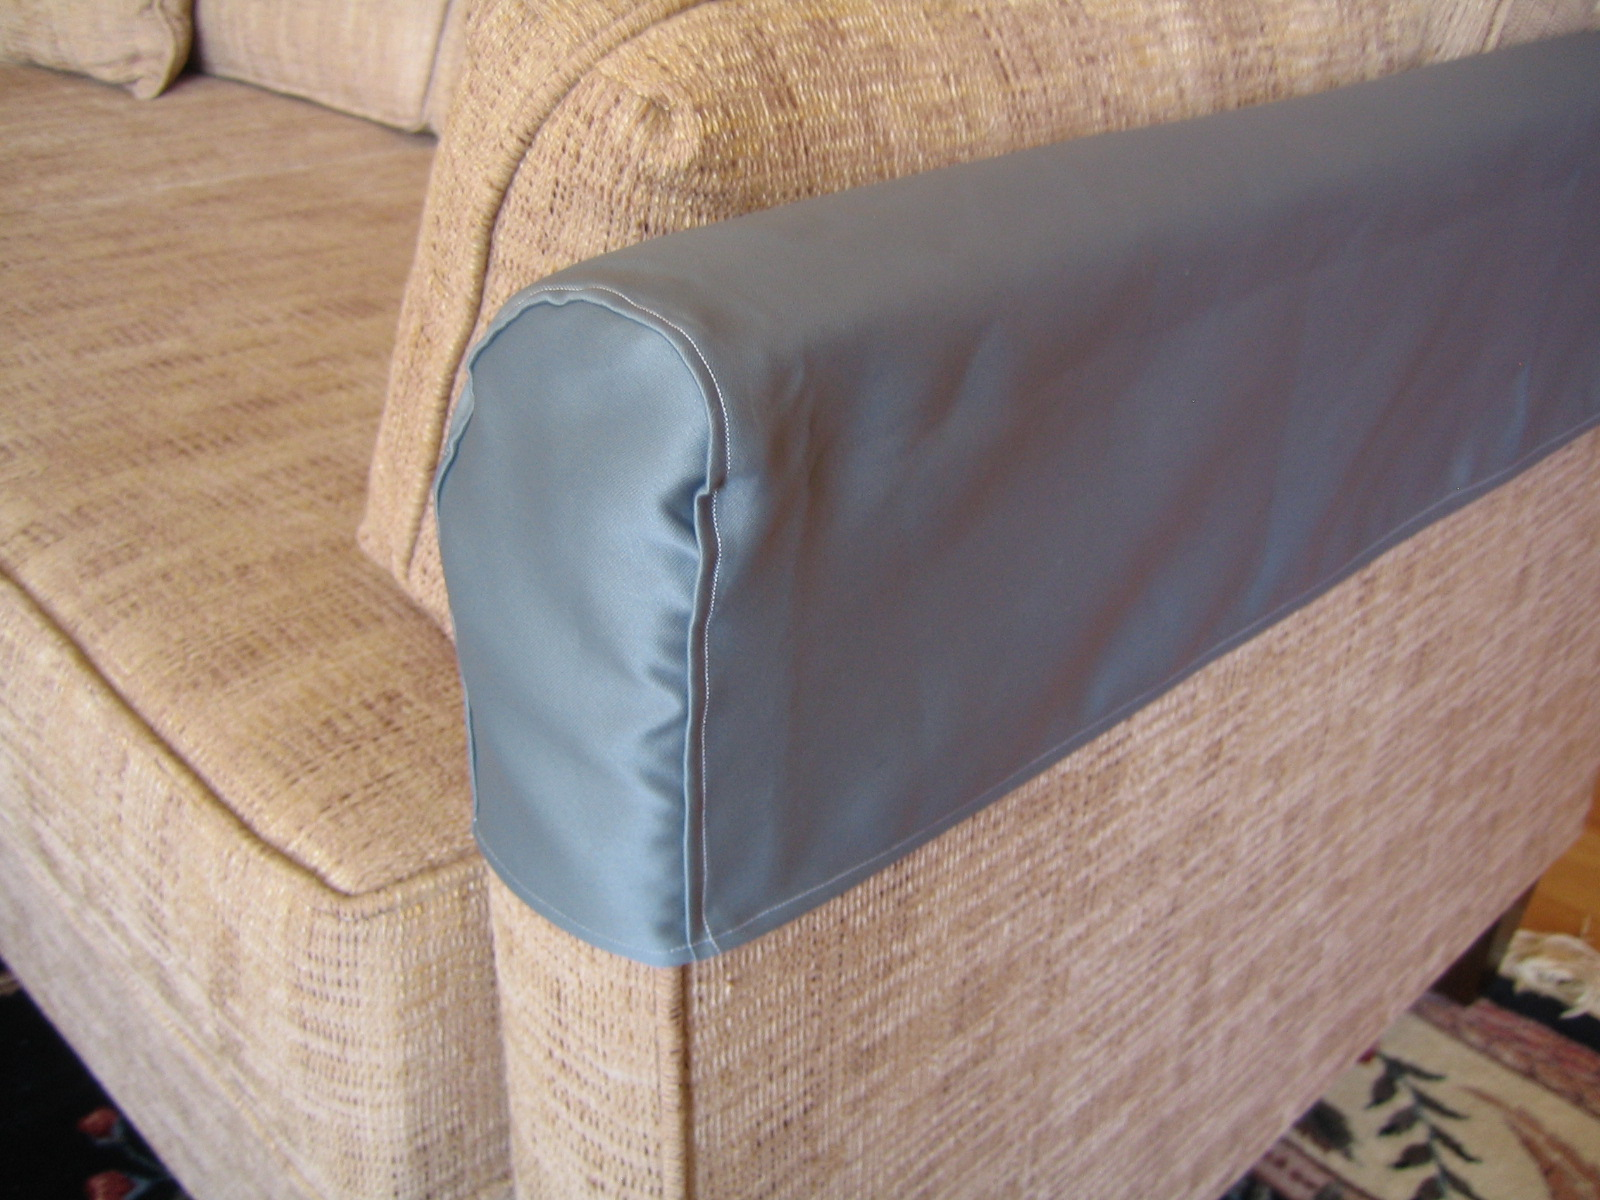 Cheap Chair Covers For Chairs With Arms To Go Deft Weft Weaving Arm